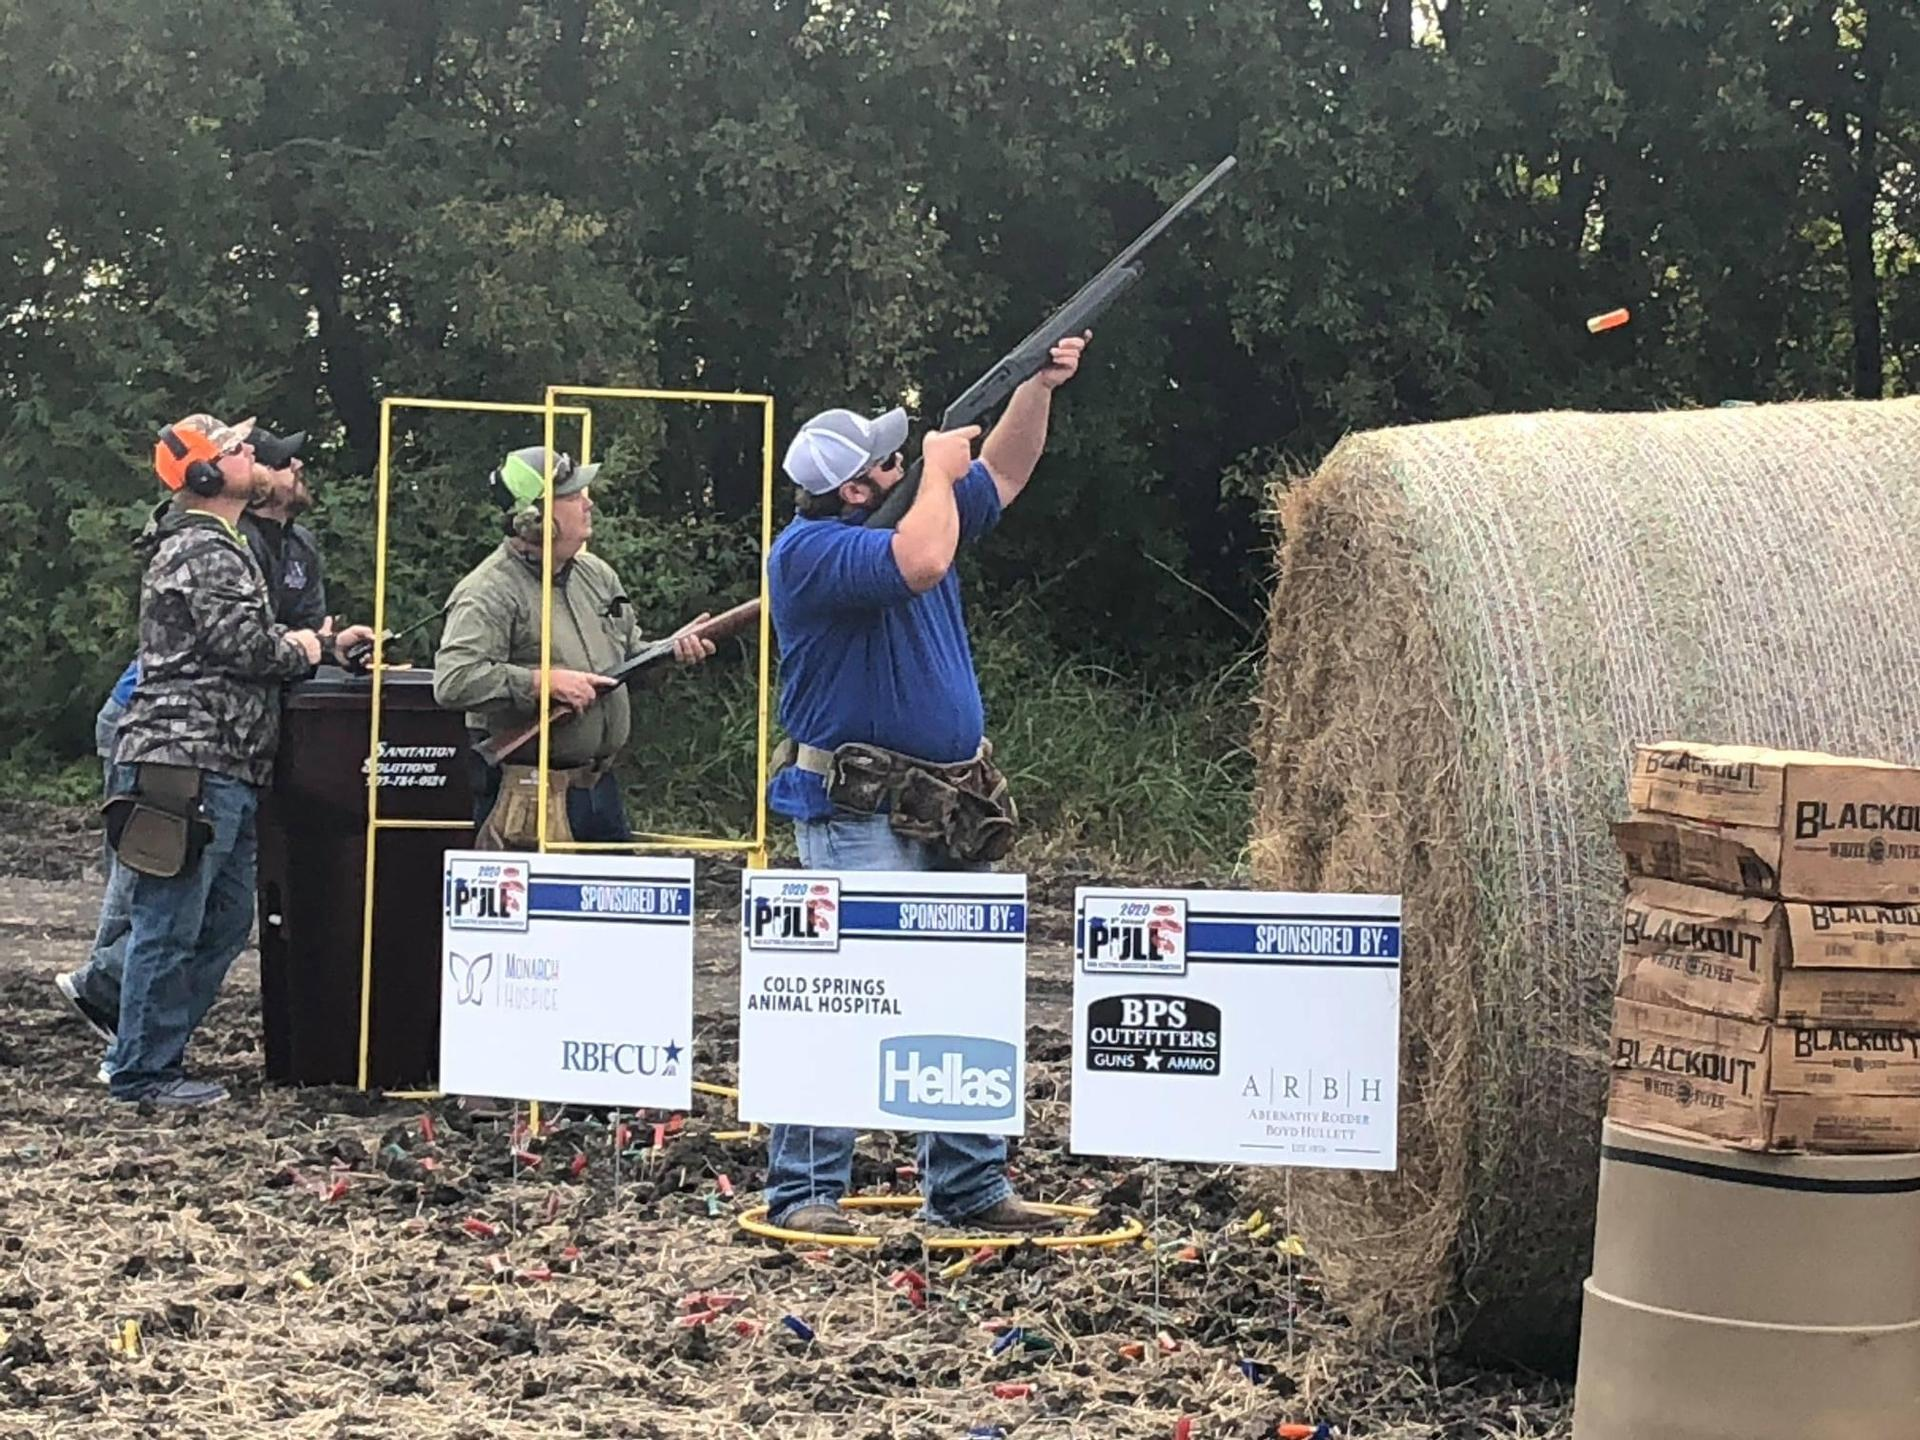 sporting clay pic